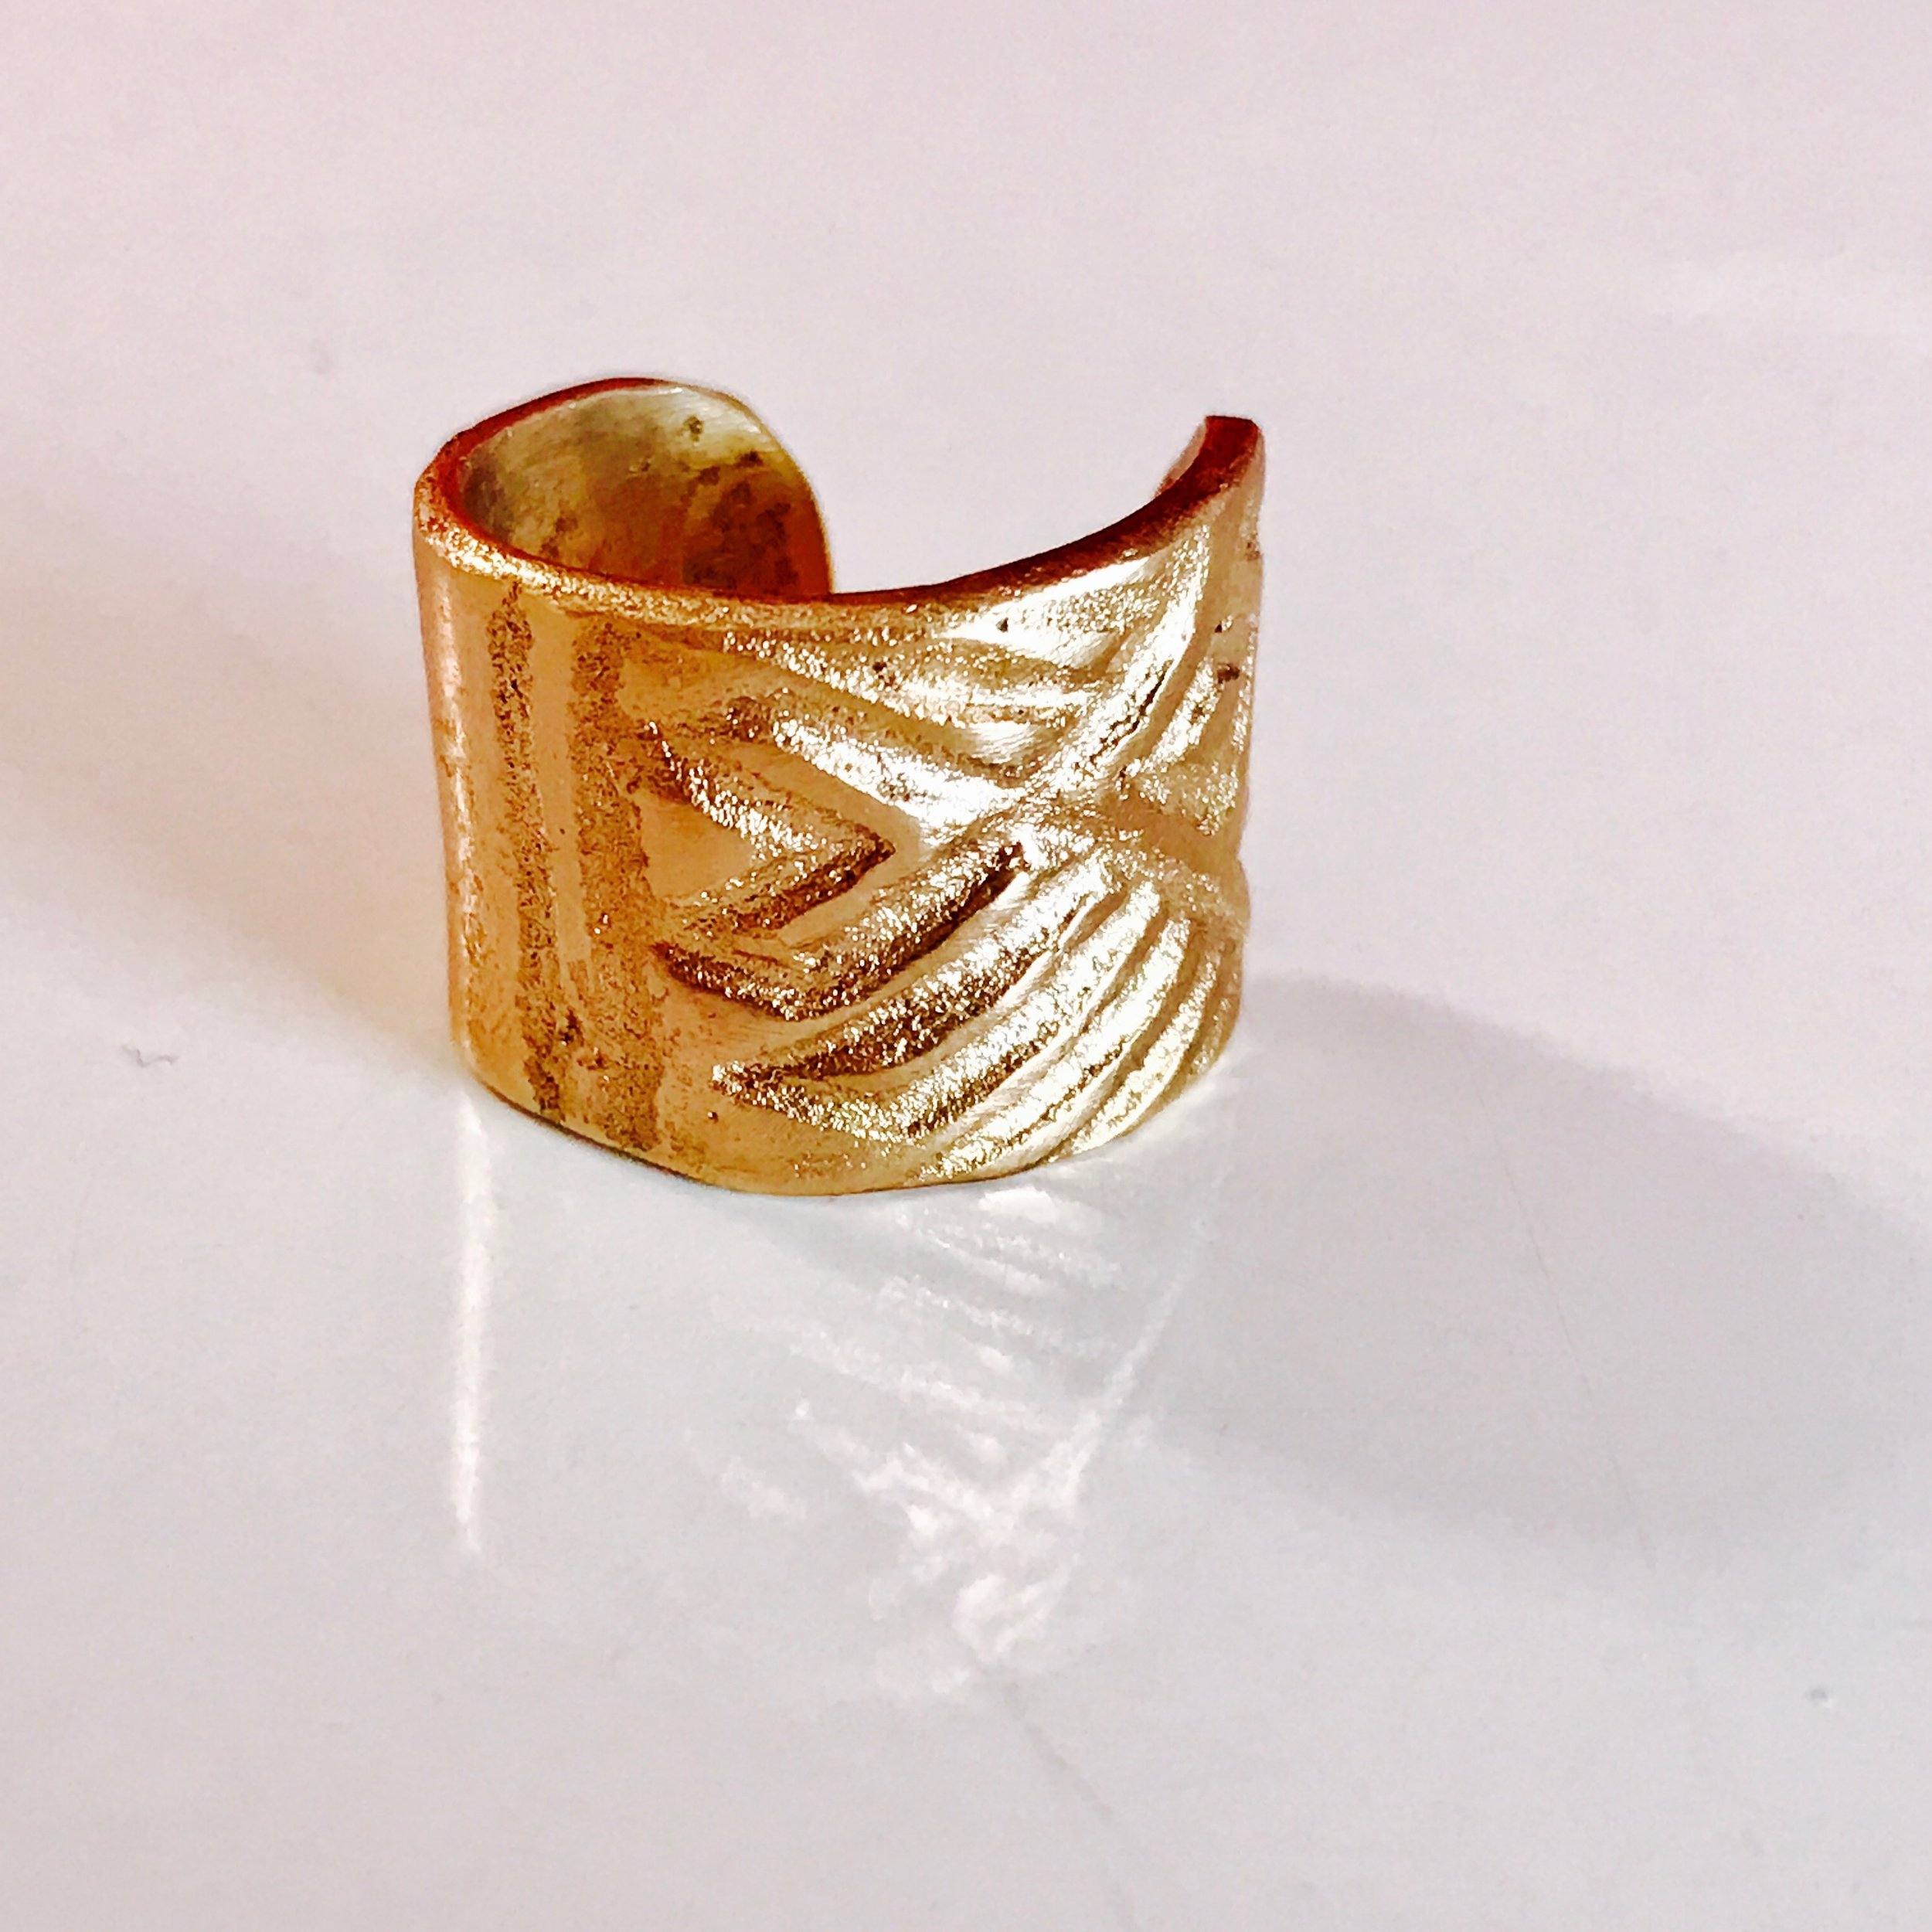 This stamped bronze ring and a double wallet is available at Almanac of Style in a special edition.   https://www.almanacofstyle.com/collections/accessories?page=2